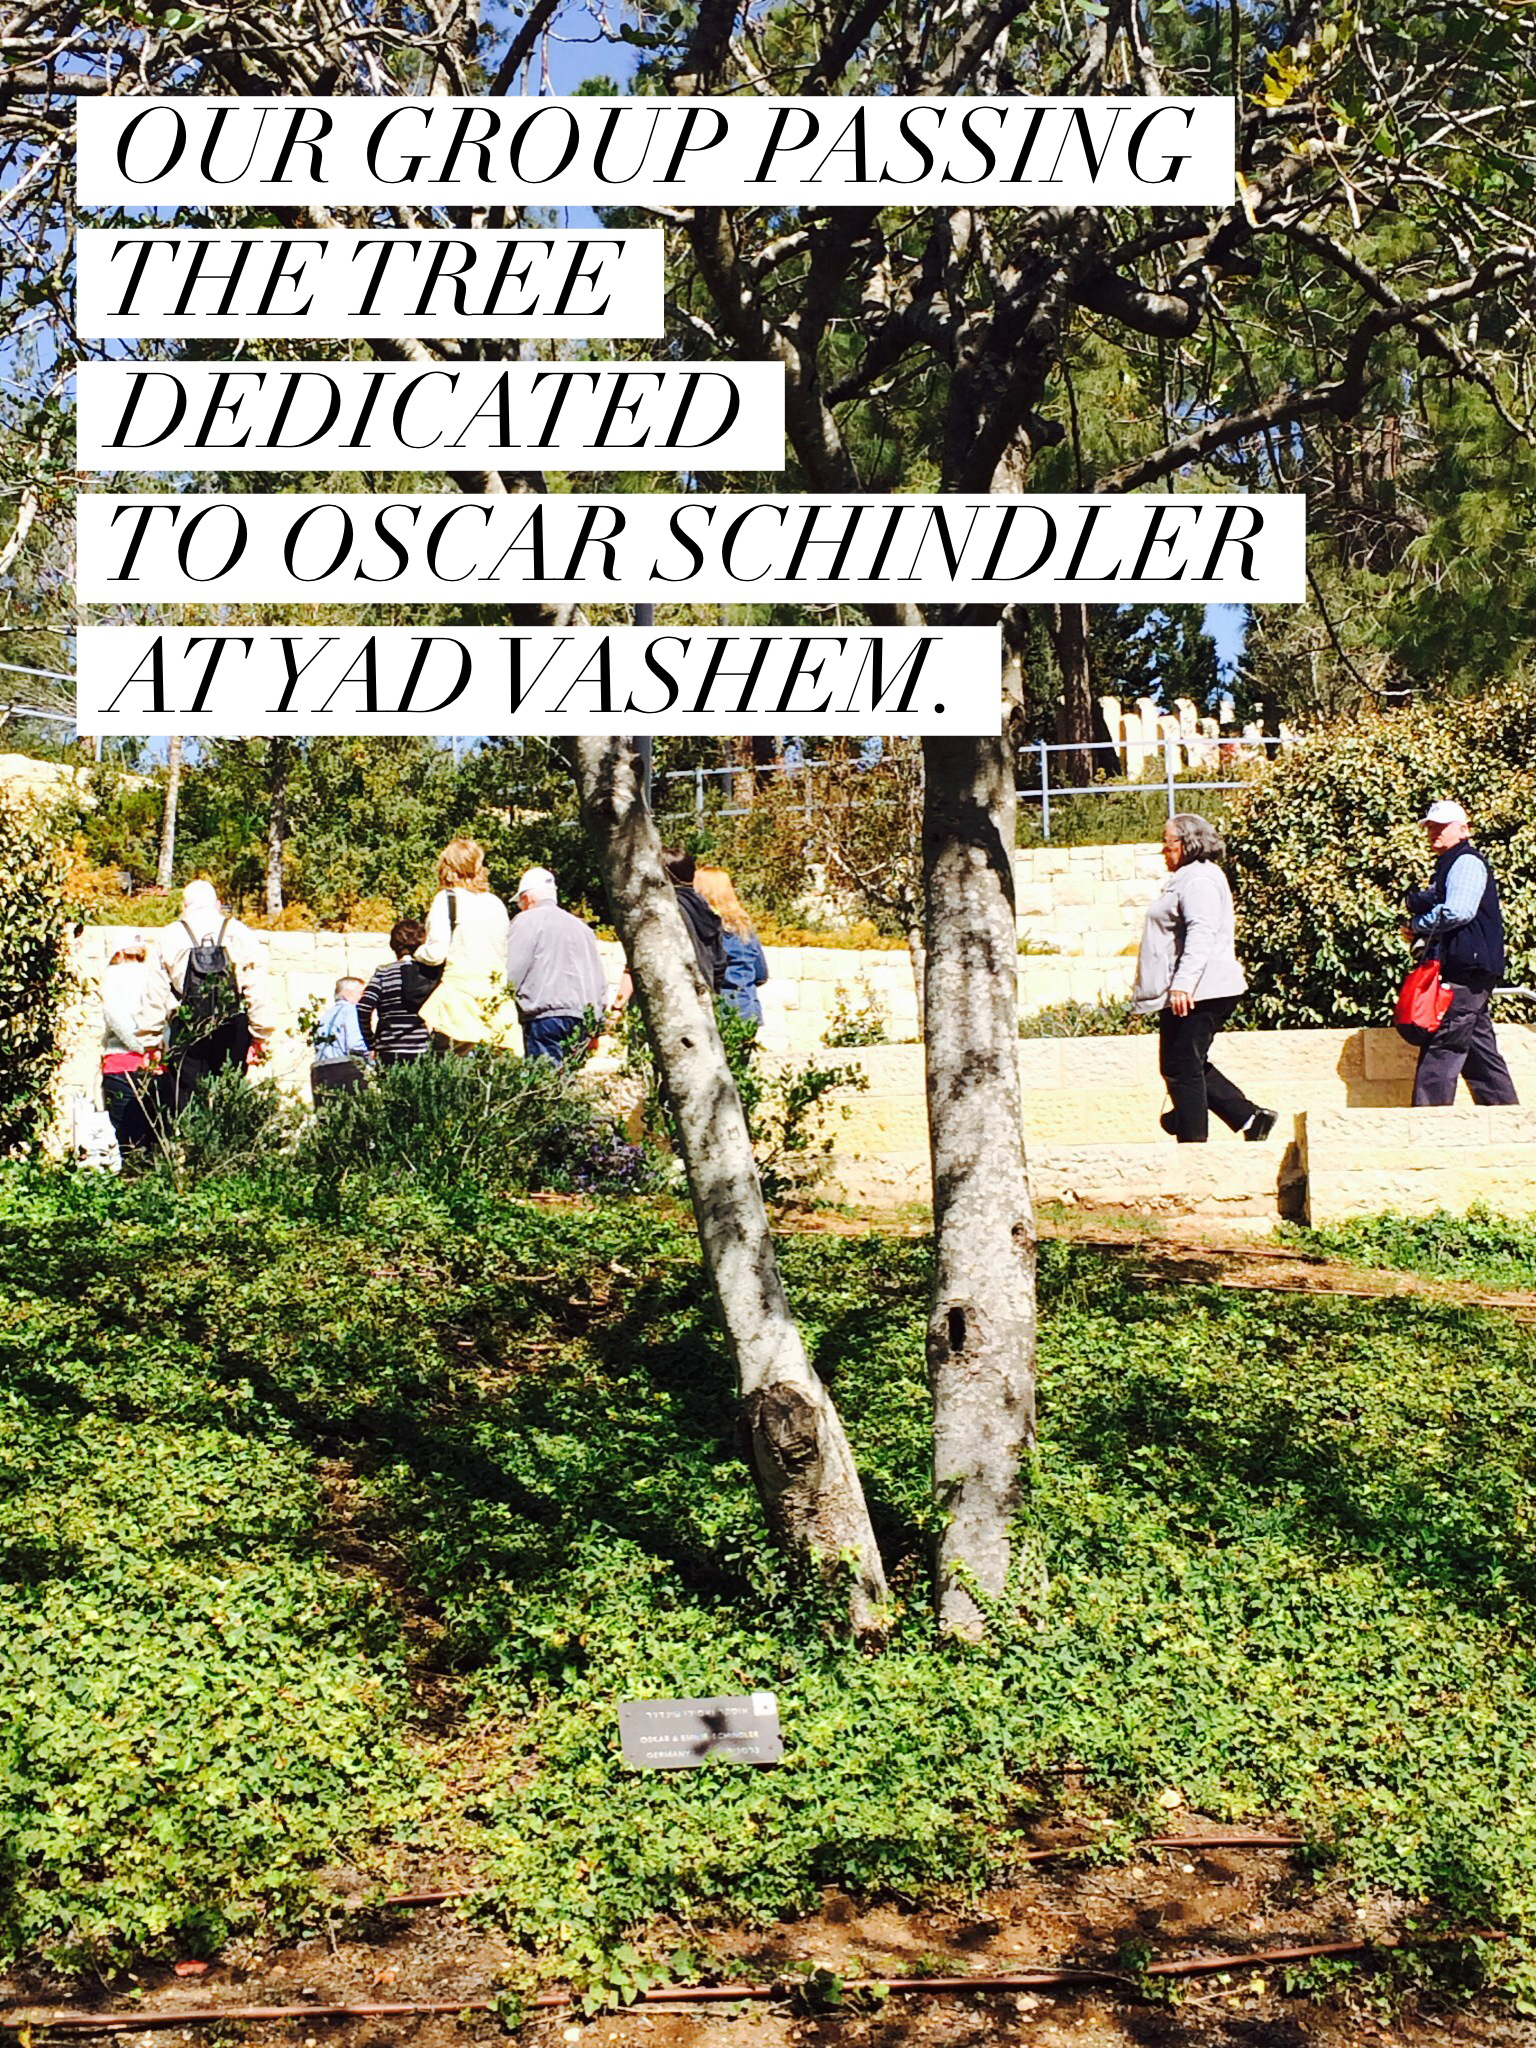 Our group passing the tree dedicated to Oscar Schindler at Yadvashem